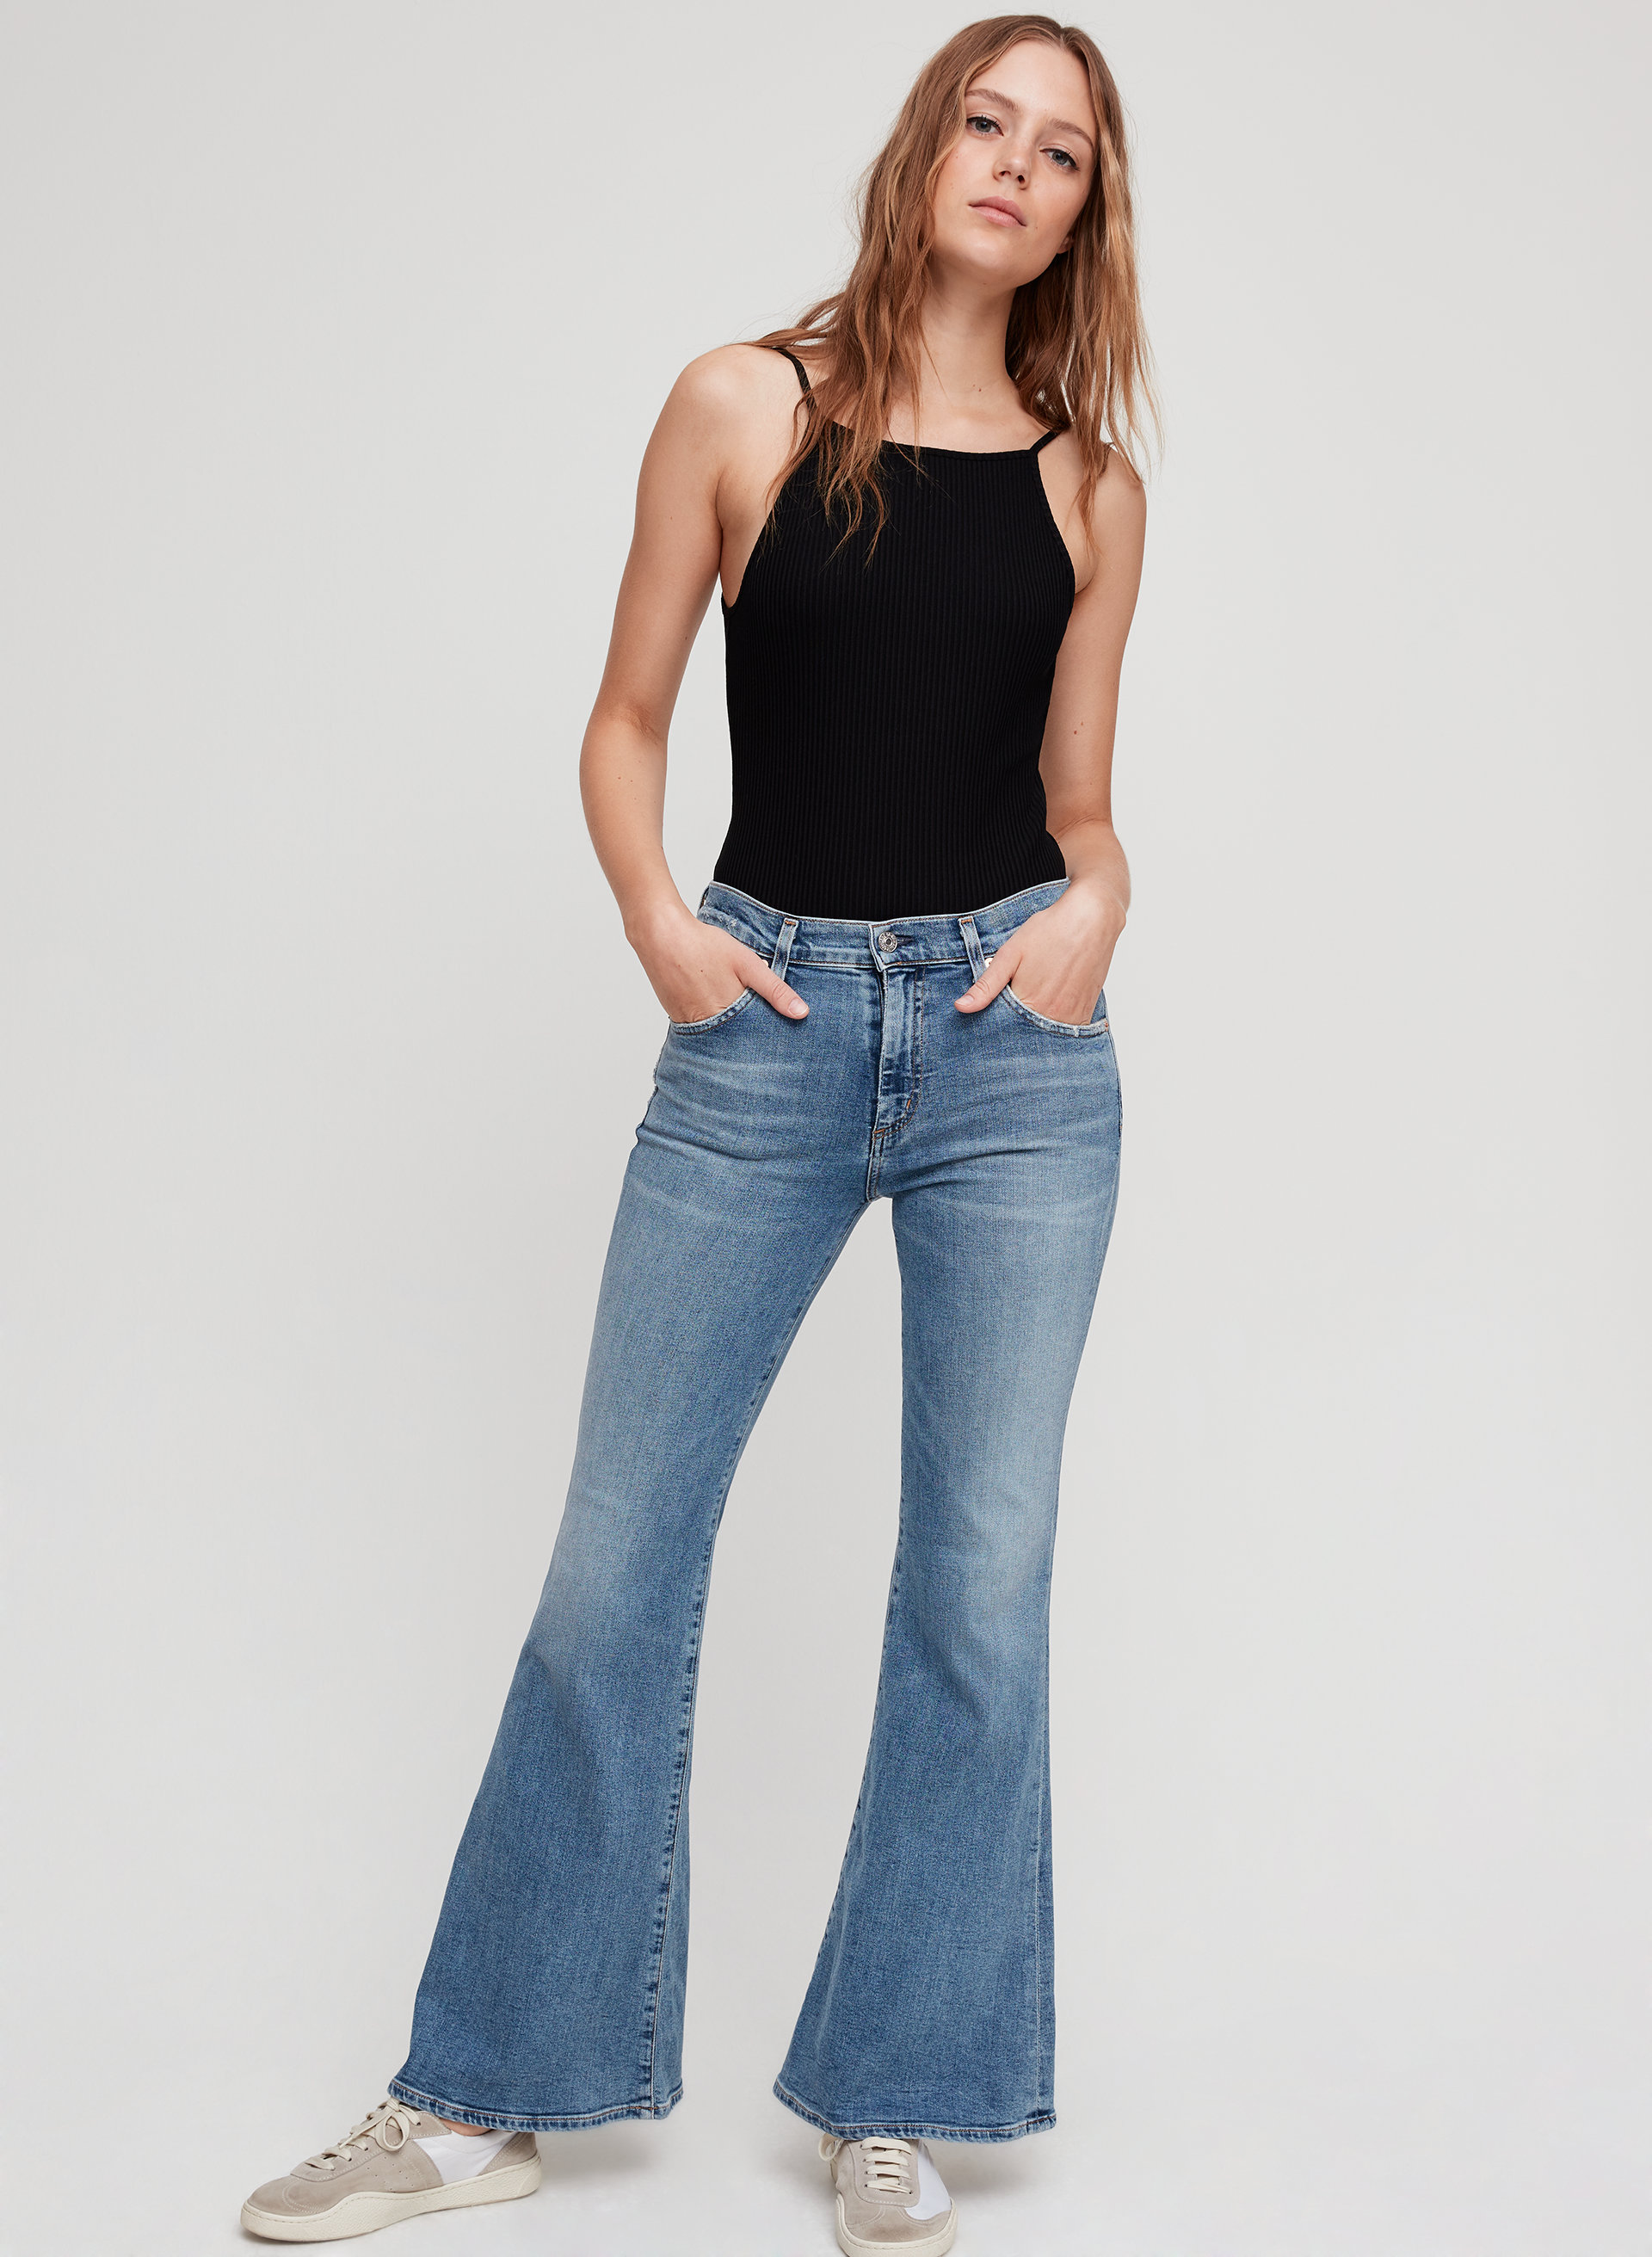 coupon codes 2019 best sell finest fabrics Citizens of Humanity CHLOE UTOPIA | Aritzia CA